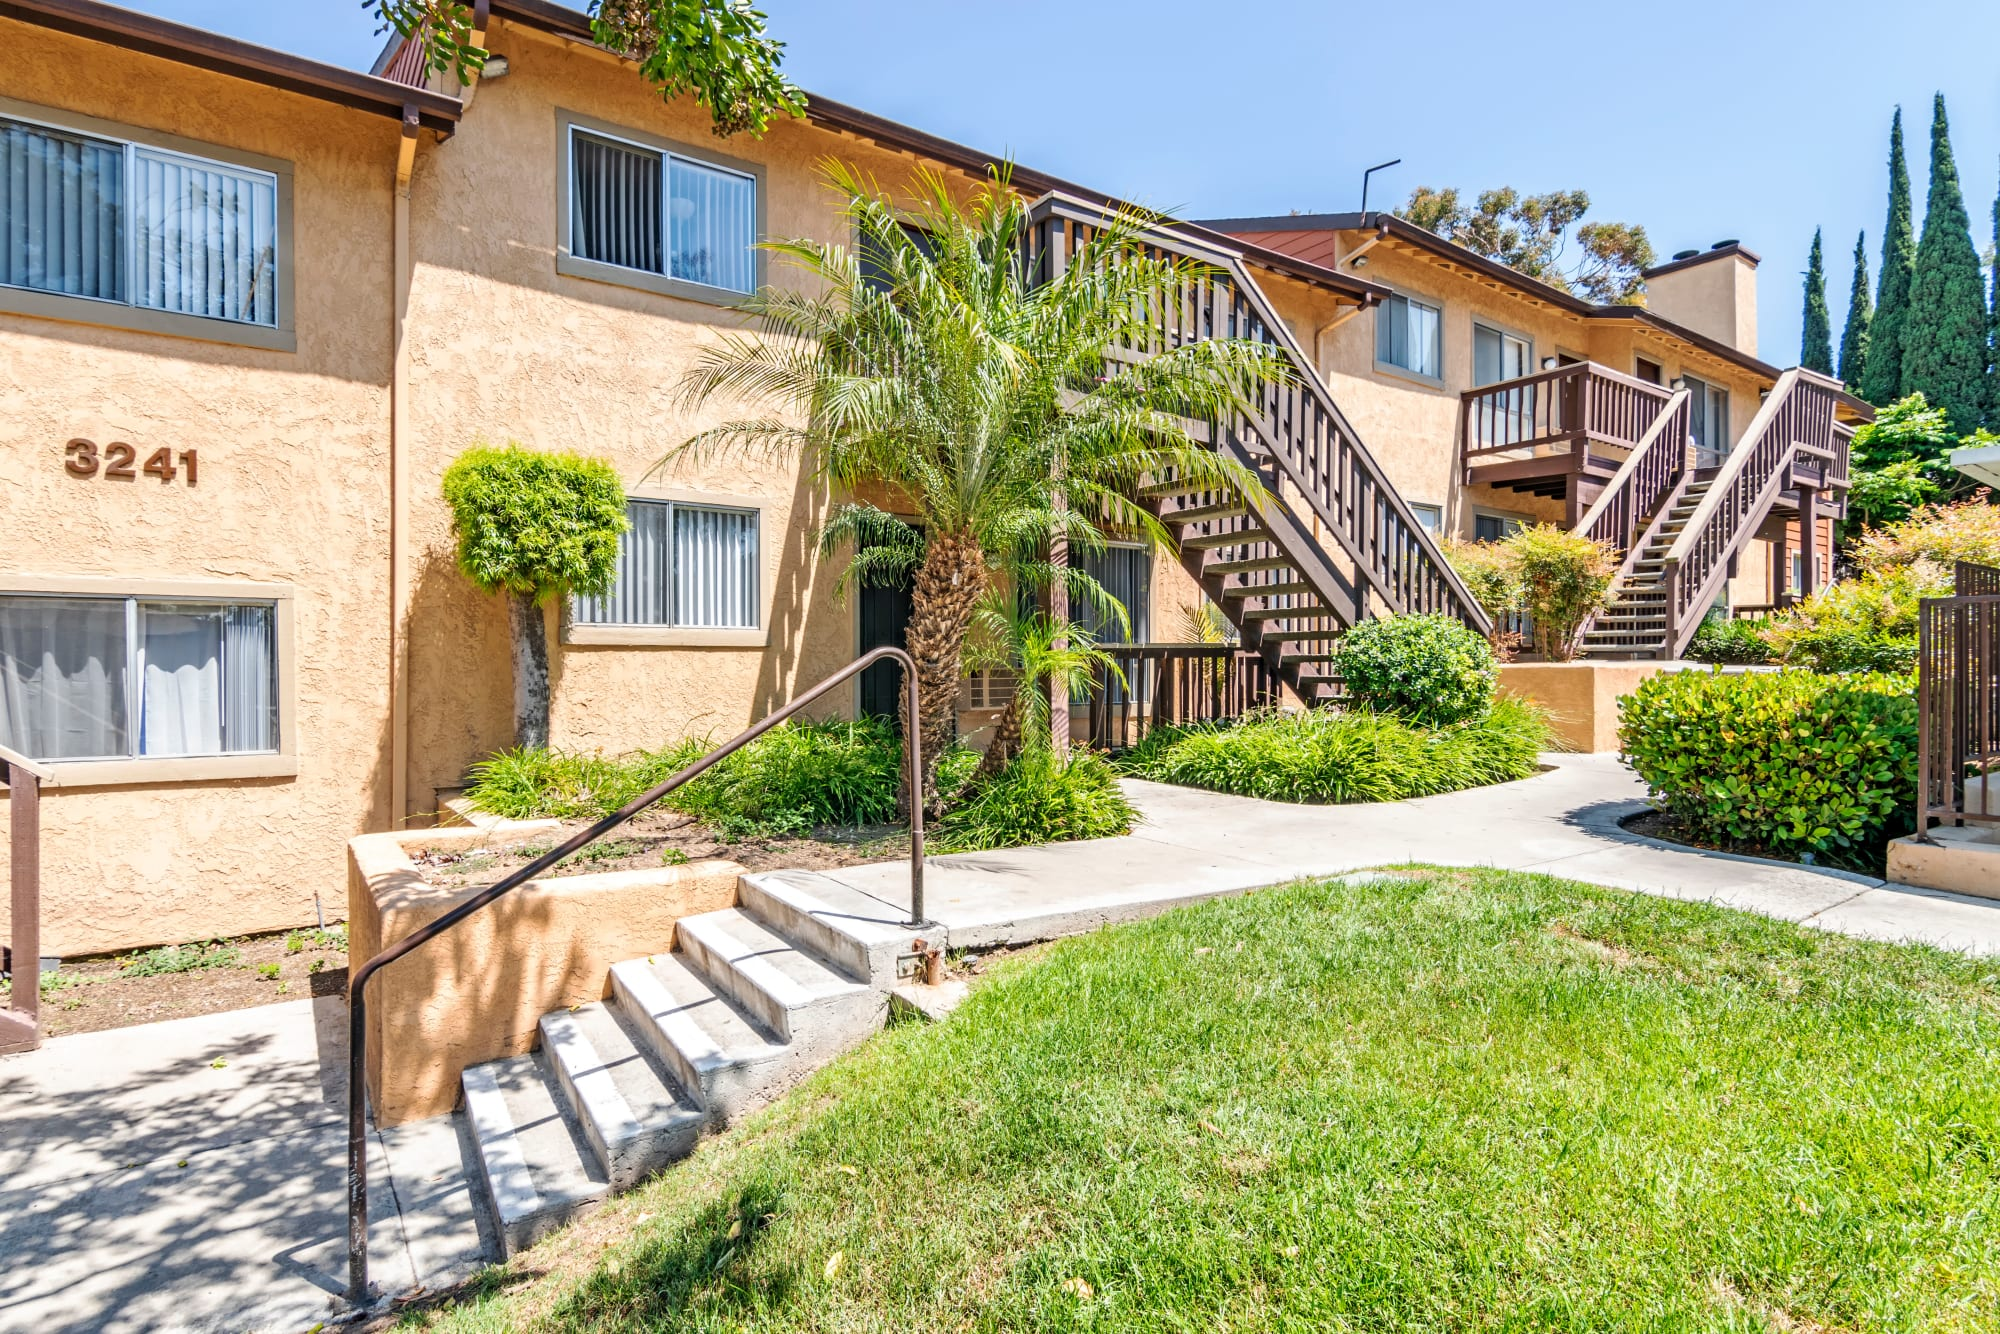 Walkways through the landscaped property at Hillside Terrace Apartments in Lemon Grove, California